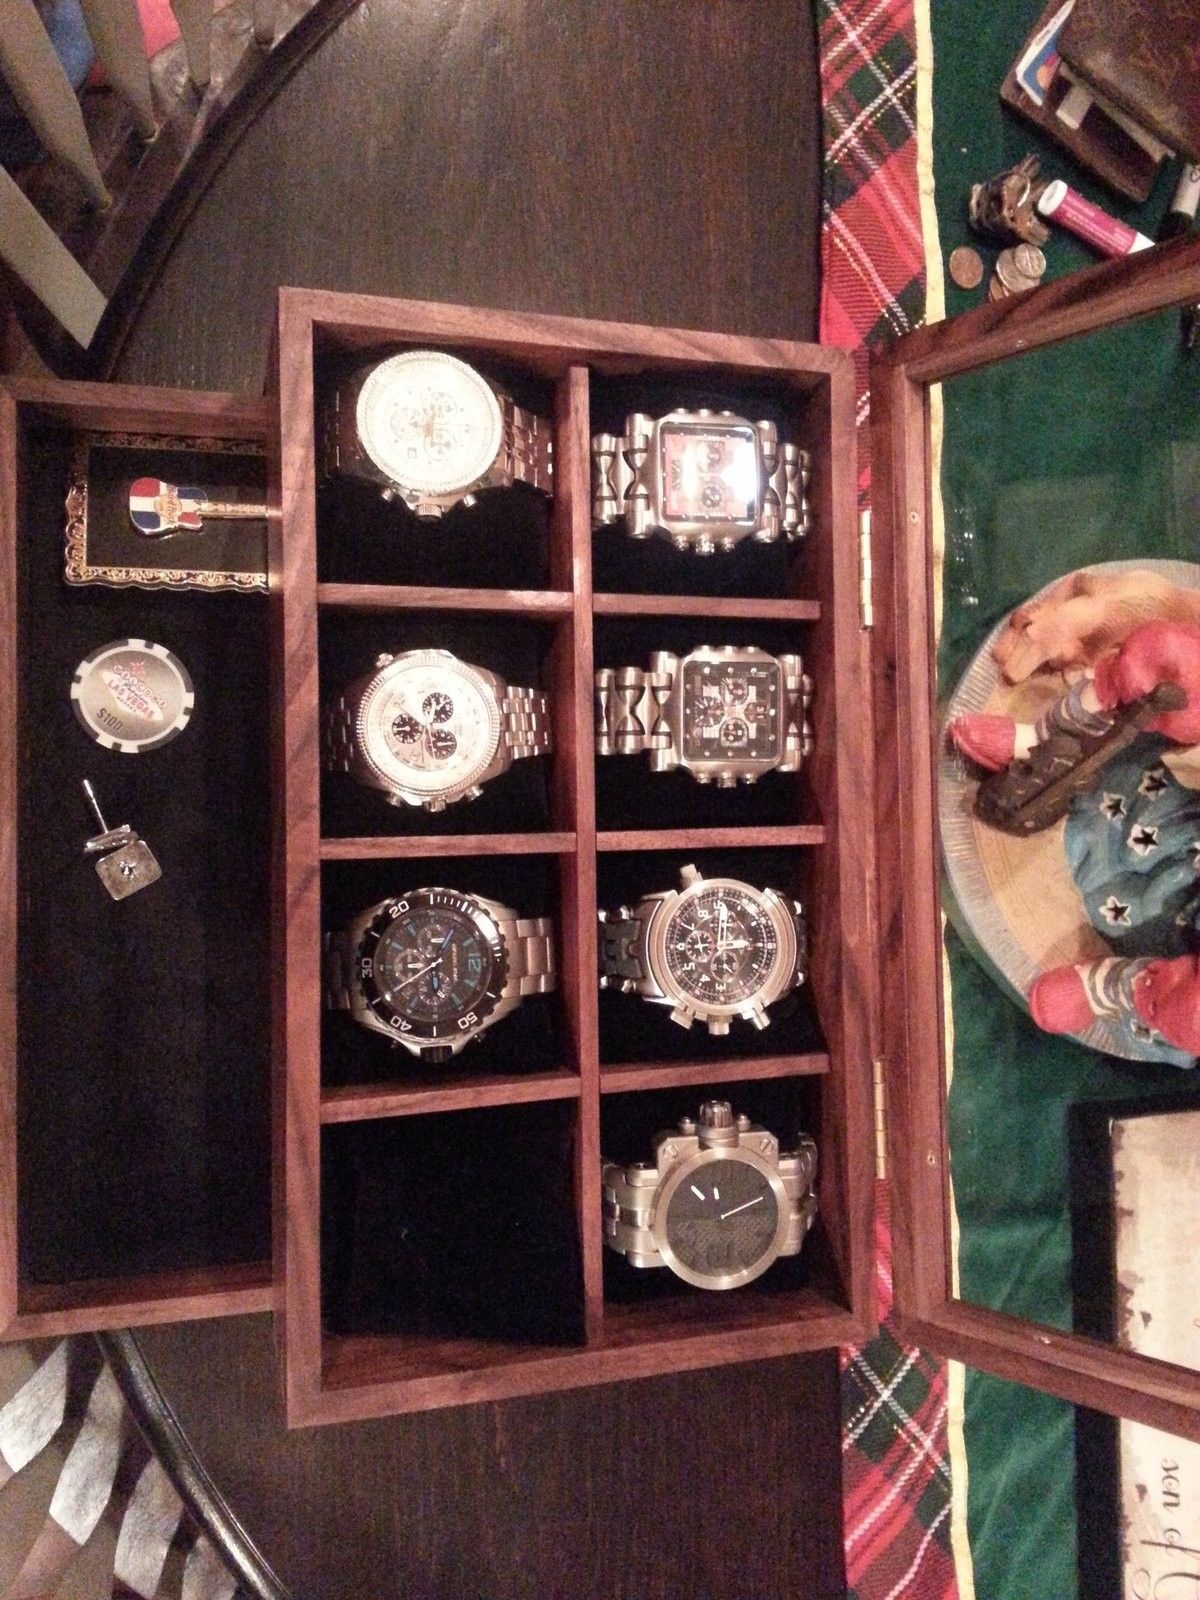 Got a new watch box.....collection growing - 20151201_203909.jpg